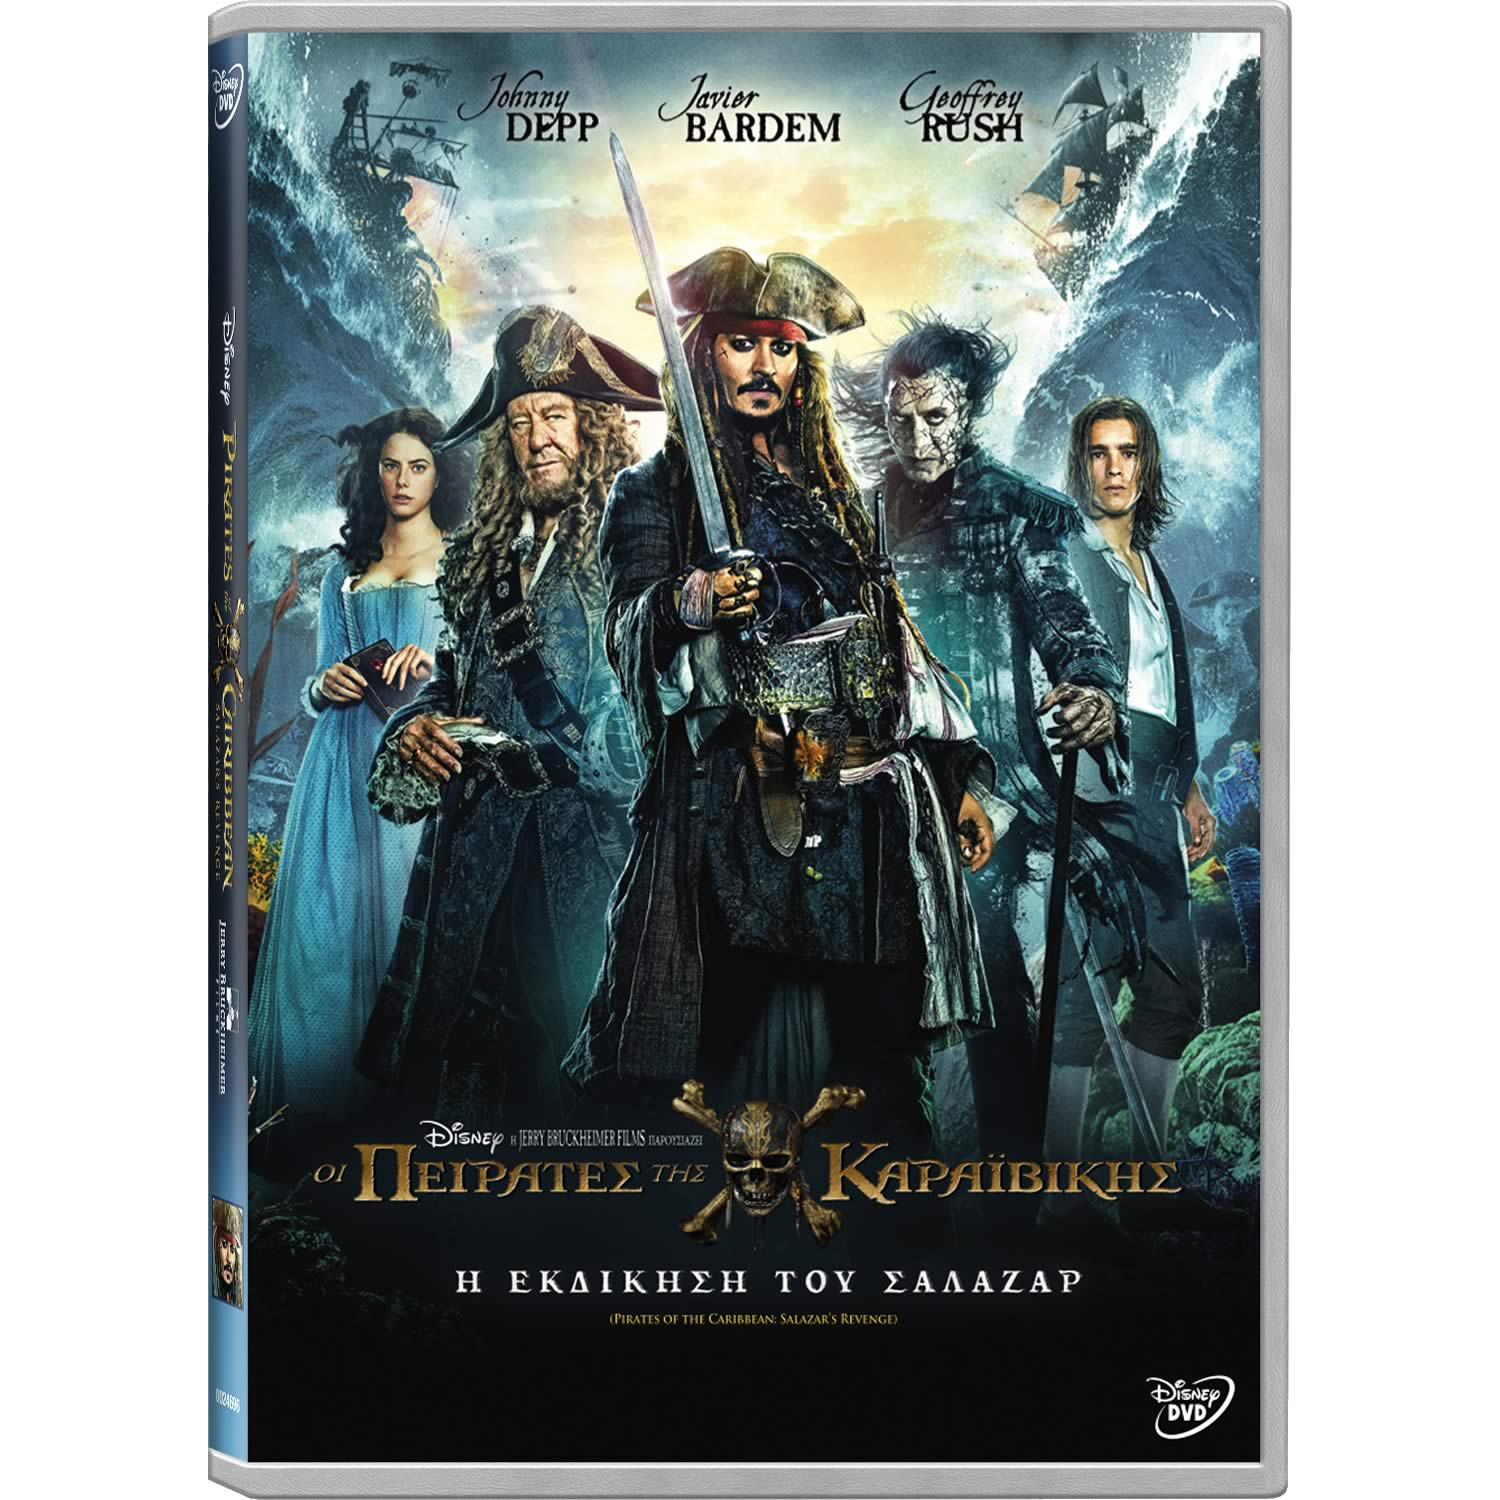 PIRATES OF THE CARIBBEAN: SALAZAR'S REVENGE - PIRATES OF THE CARIBBEAN: DEAD MEN TELL NO TALES - ΠΕΙΡΑΤΕΣ ΤΗΣ ΚΑΡΑΪΒΙΚΗΣ: Η ΕΚΔΙΚΗΣΗ ΤΟΥ ΣΑΛΑΖΑΡ (DVD)